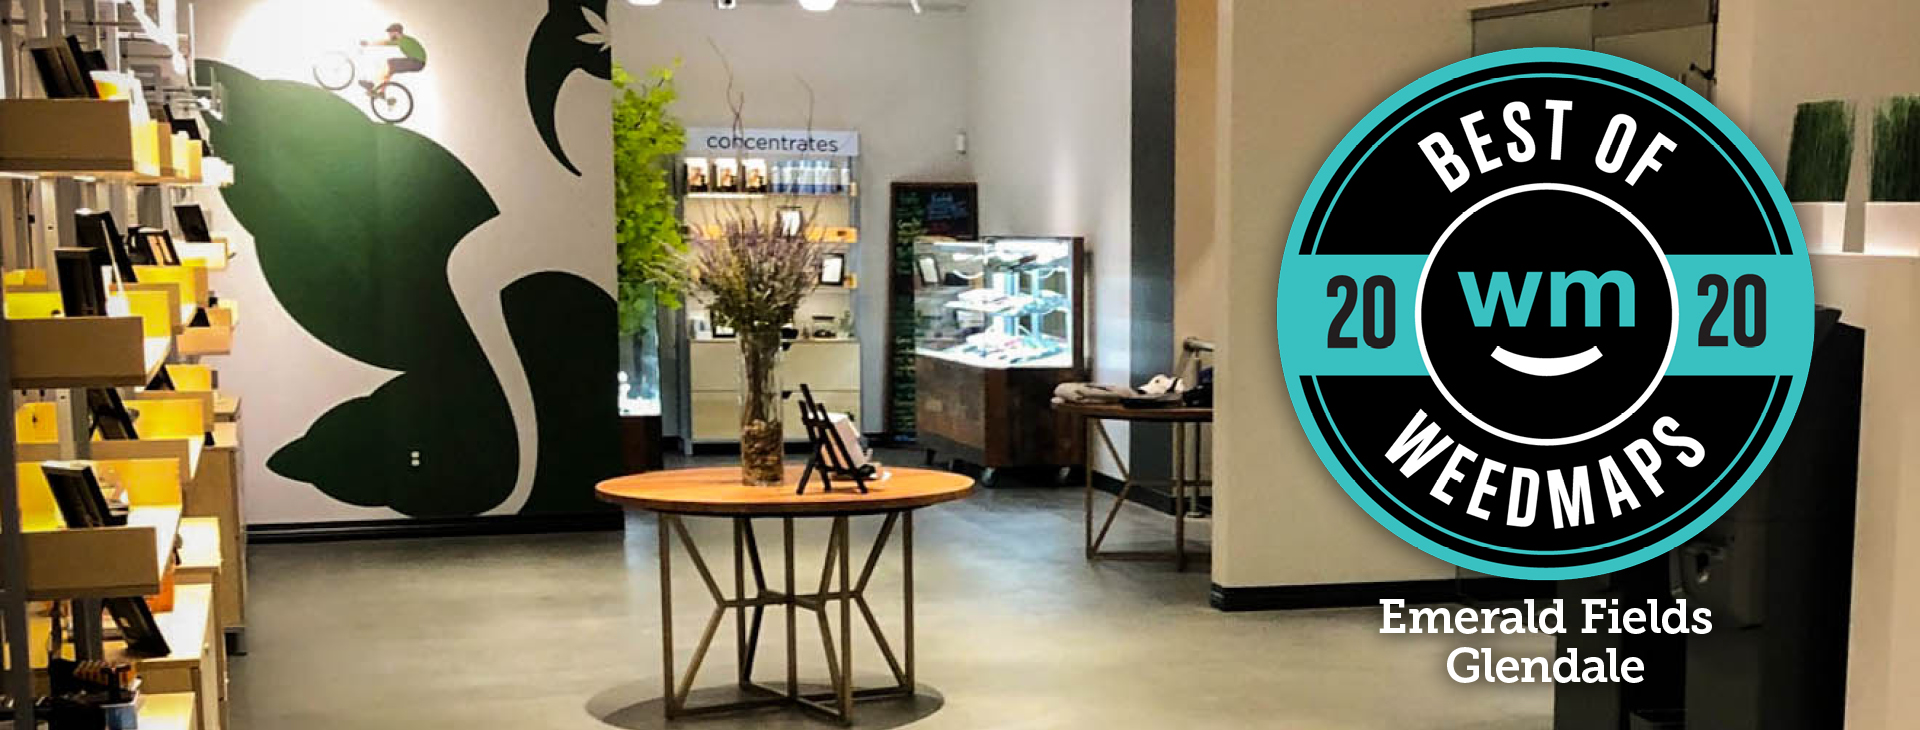 Emerald Fields Glendale Recreational Dispensary won the coveted Best of Weedmaps Award for 2020